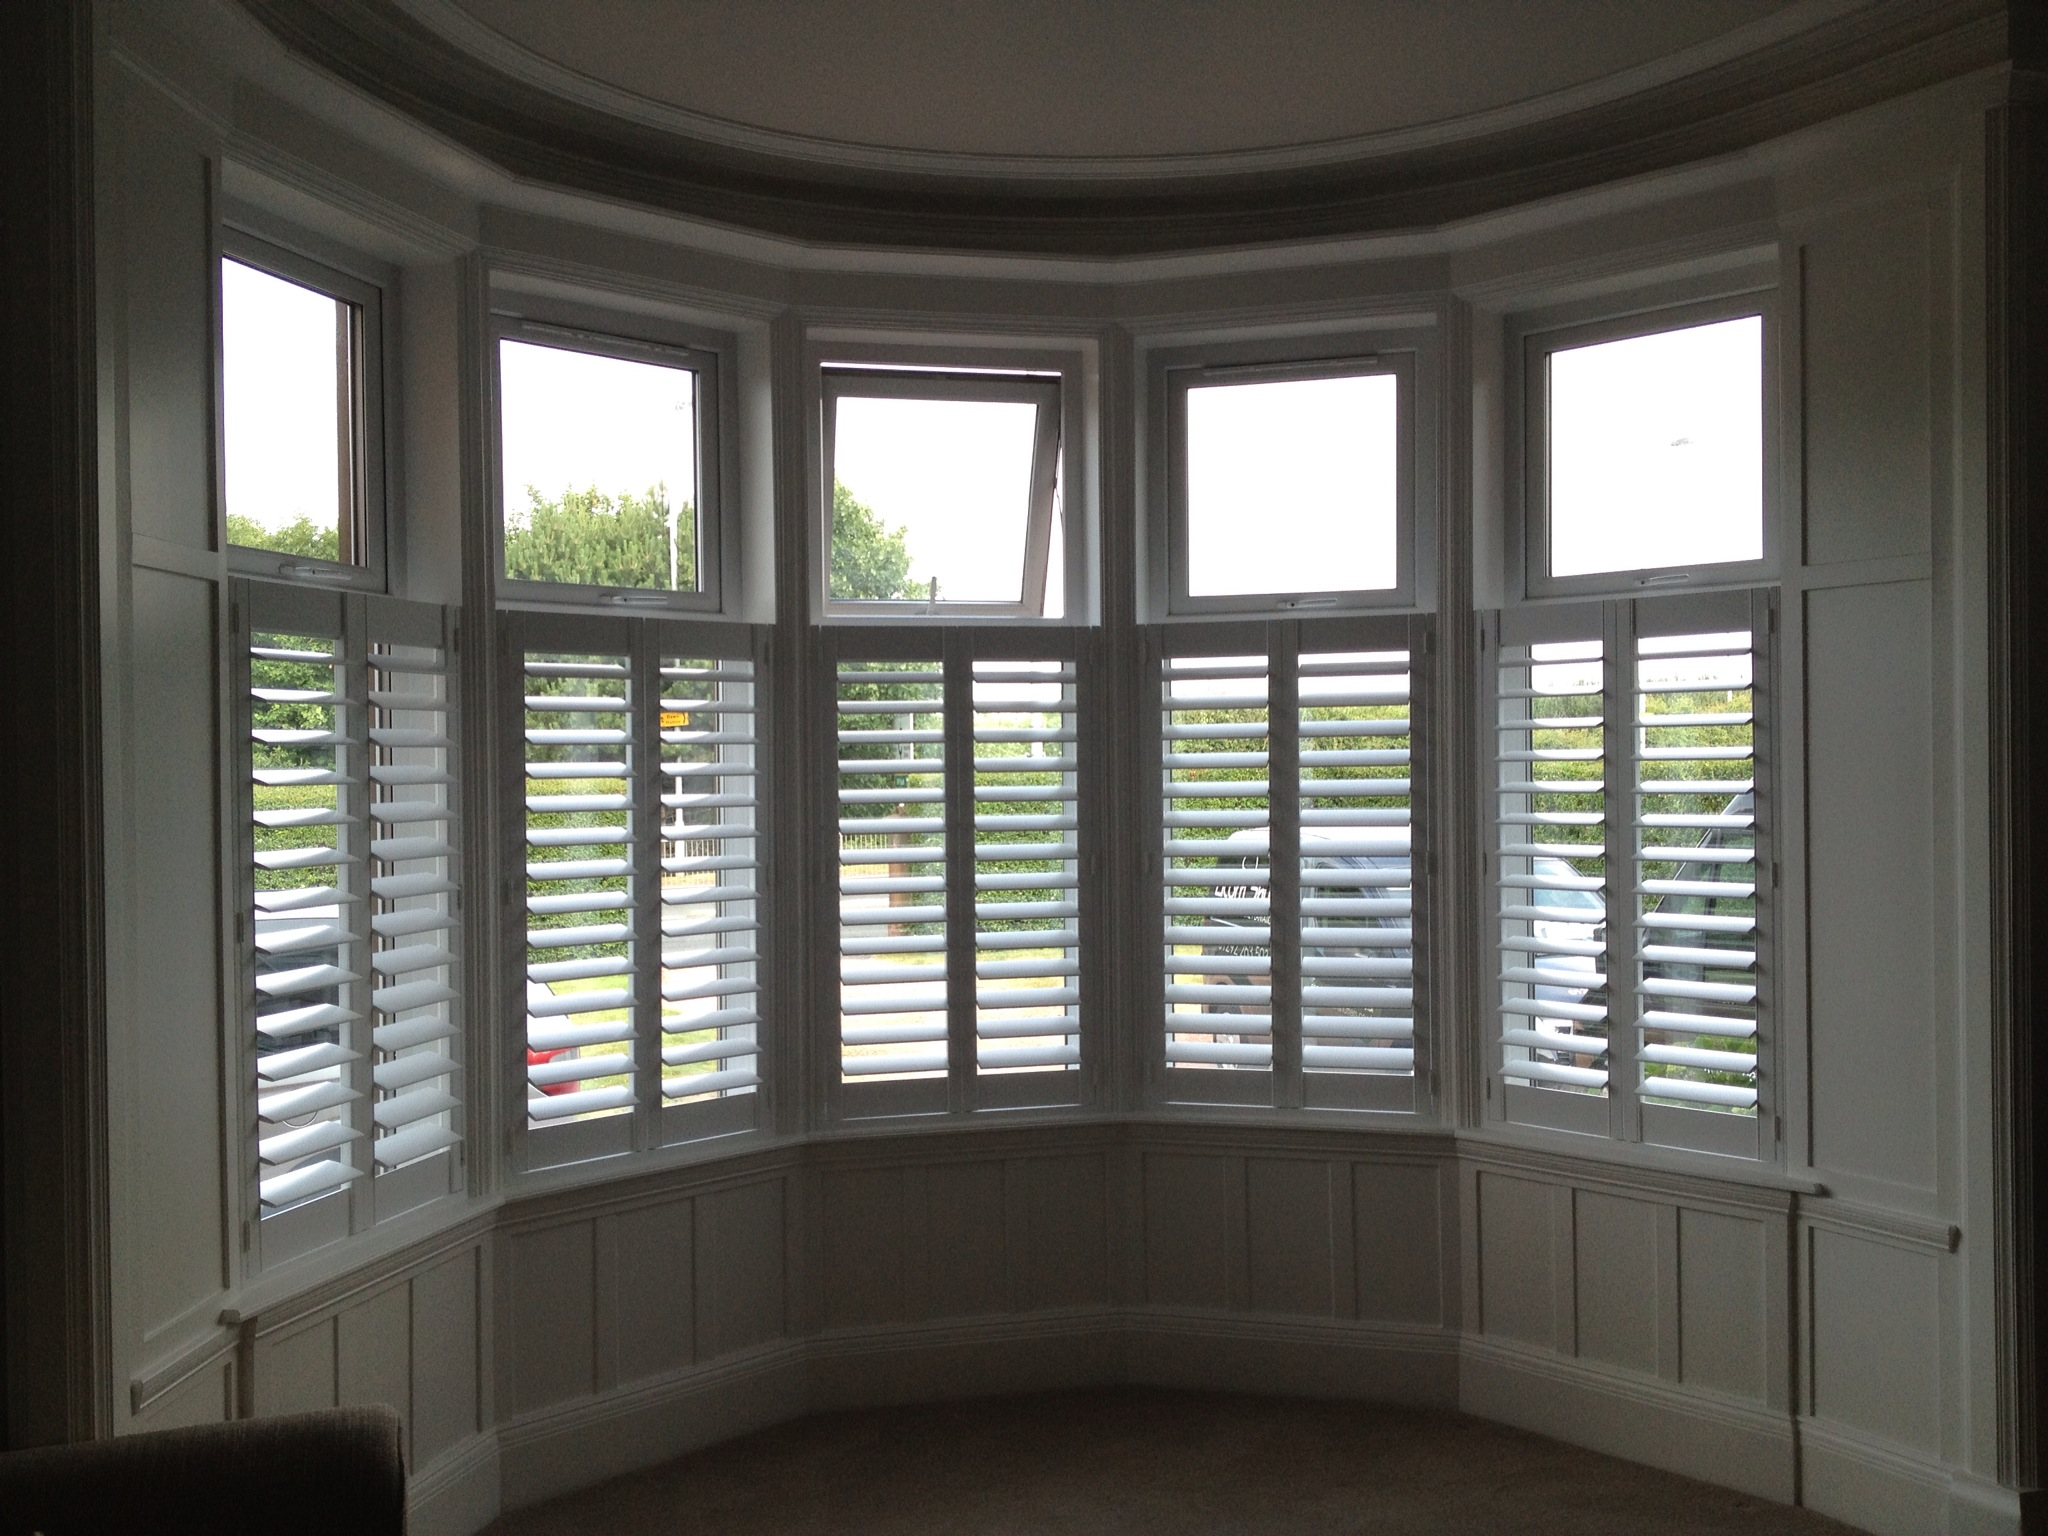 treatments wood plantation indiana indianapolis shutter shutters window for wooden interior blinds windows